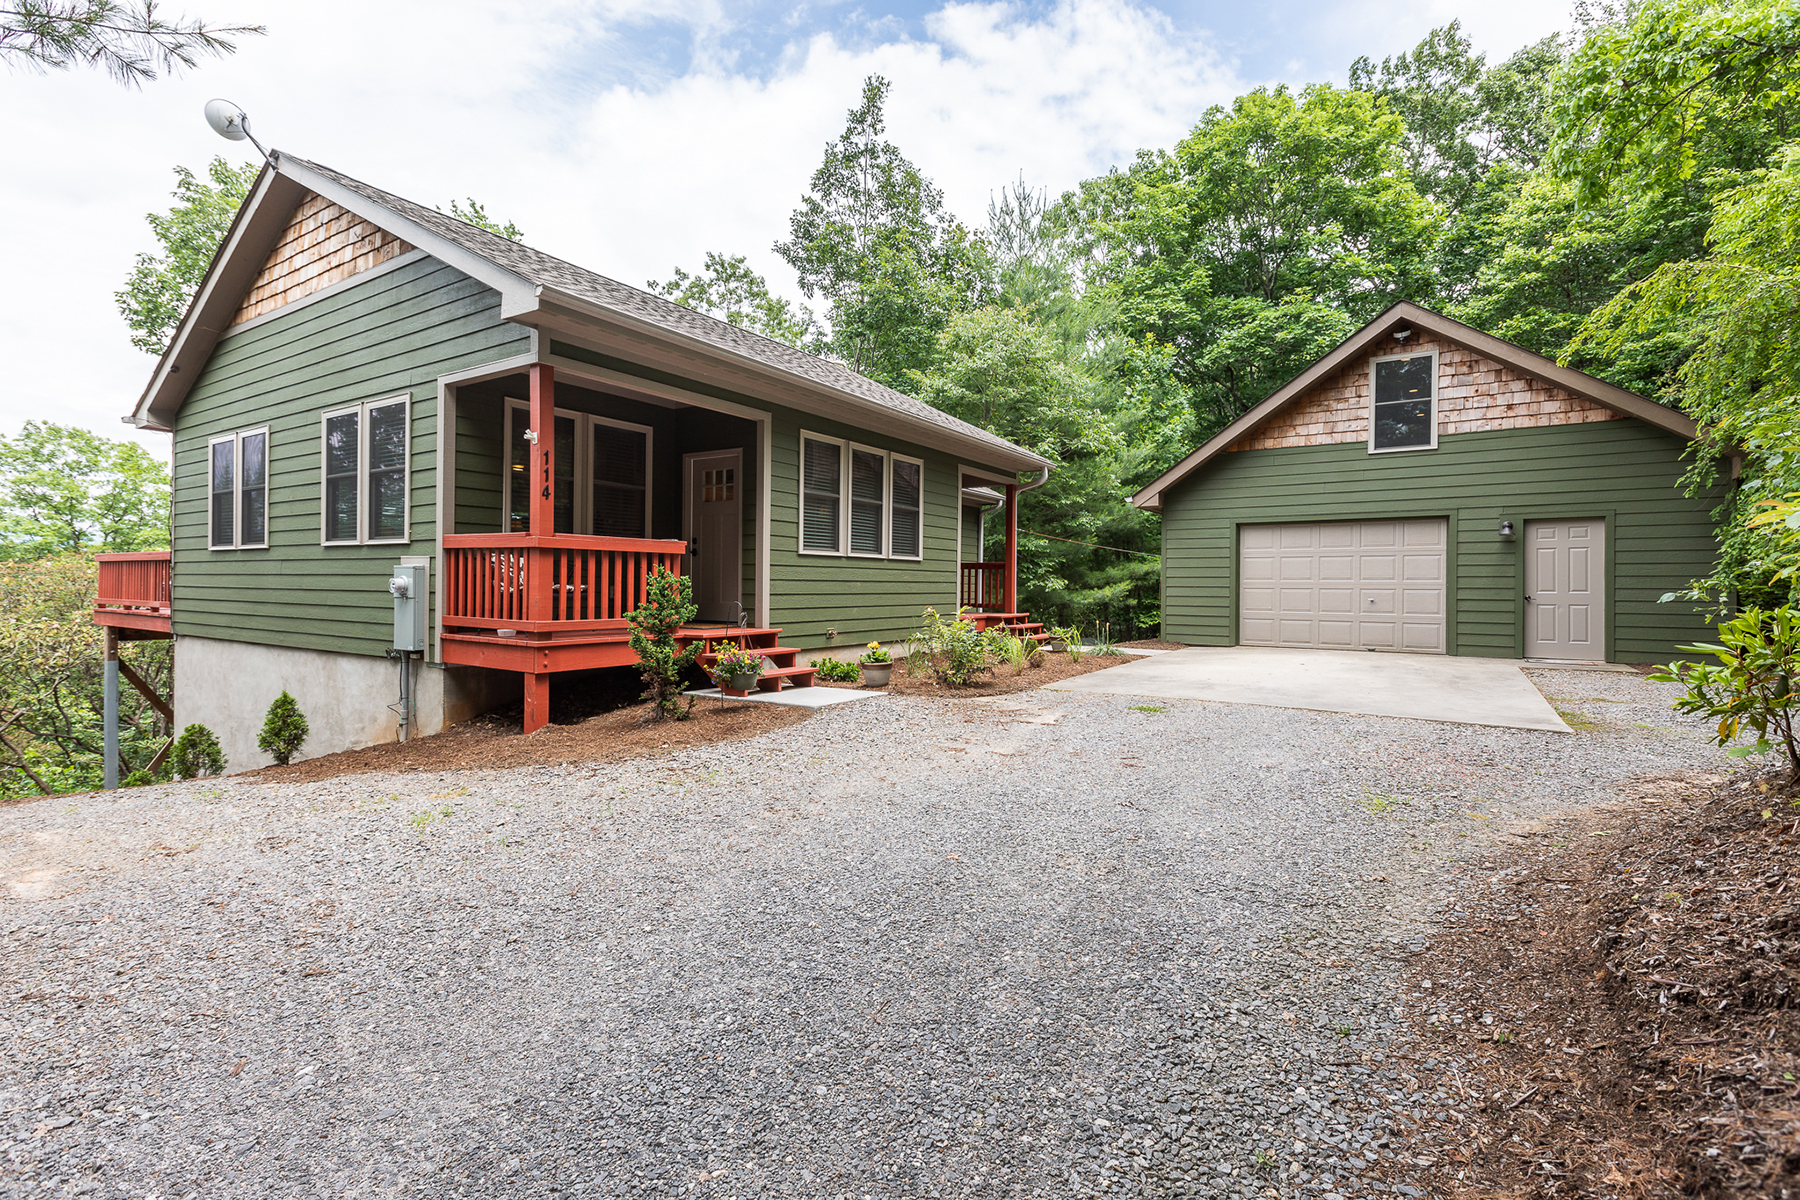 Single Family Homes for Active at ALPINE MOUNTAIN 114 Lady Slipper Trl Swannanoa, North Carolina 28778 United States